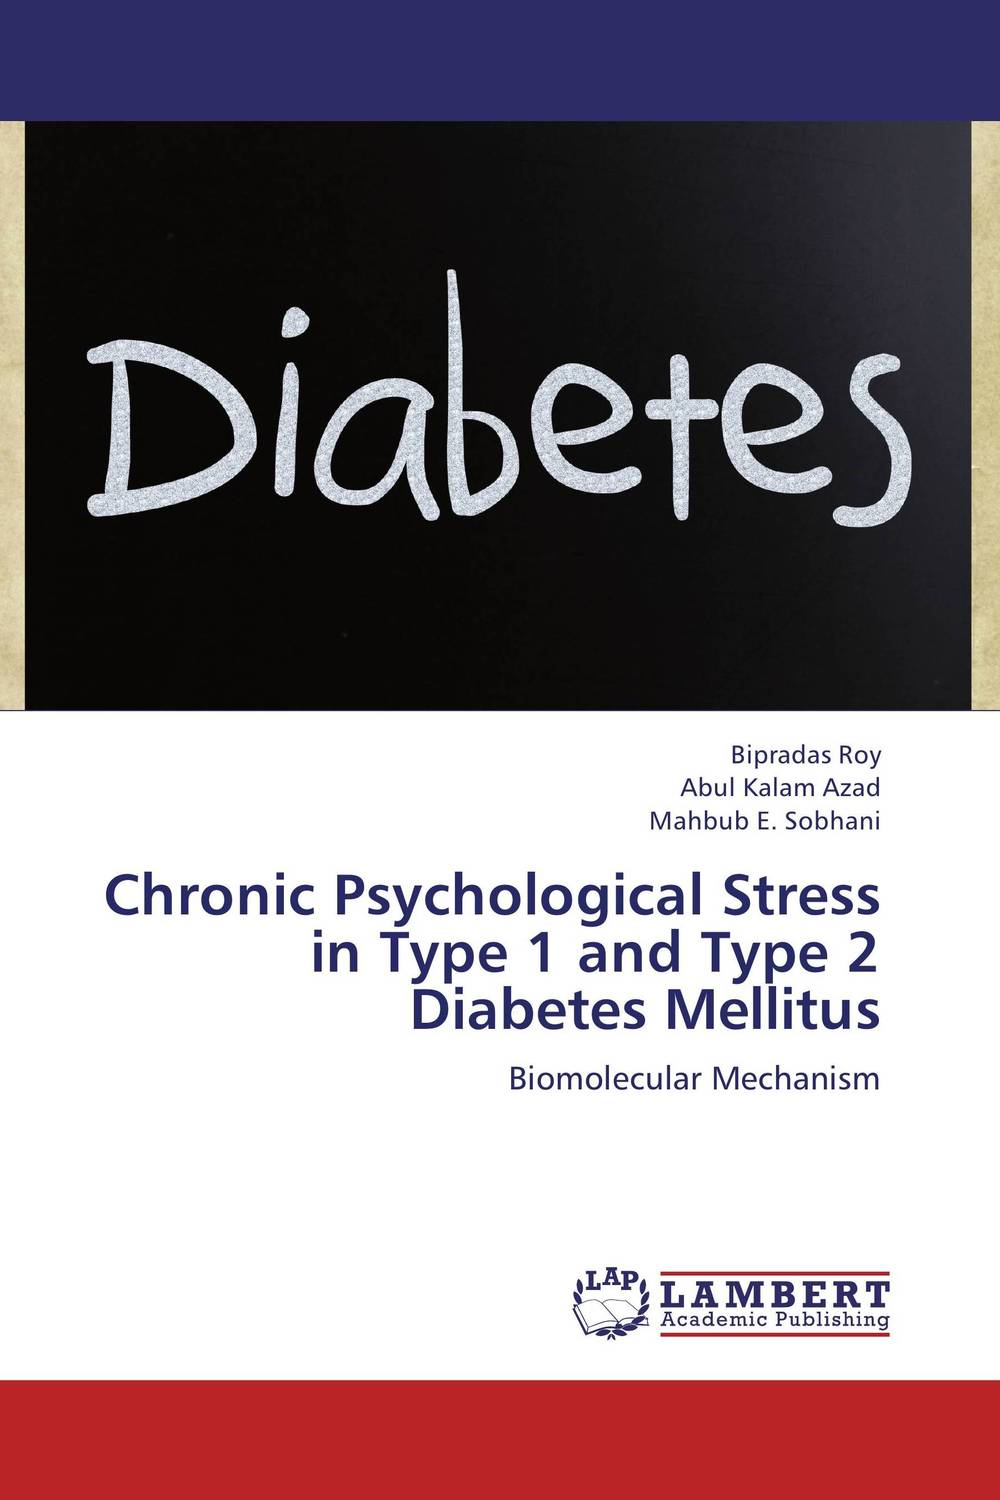 Chronic Psychological Stress in Type 1 and Type 2 Diabetes Mellitus sharad leve rakesh verma and rakesh kumar dixit role of irbesartan and curcumin in type 2 diabetes mellitus